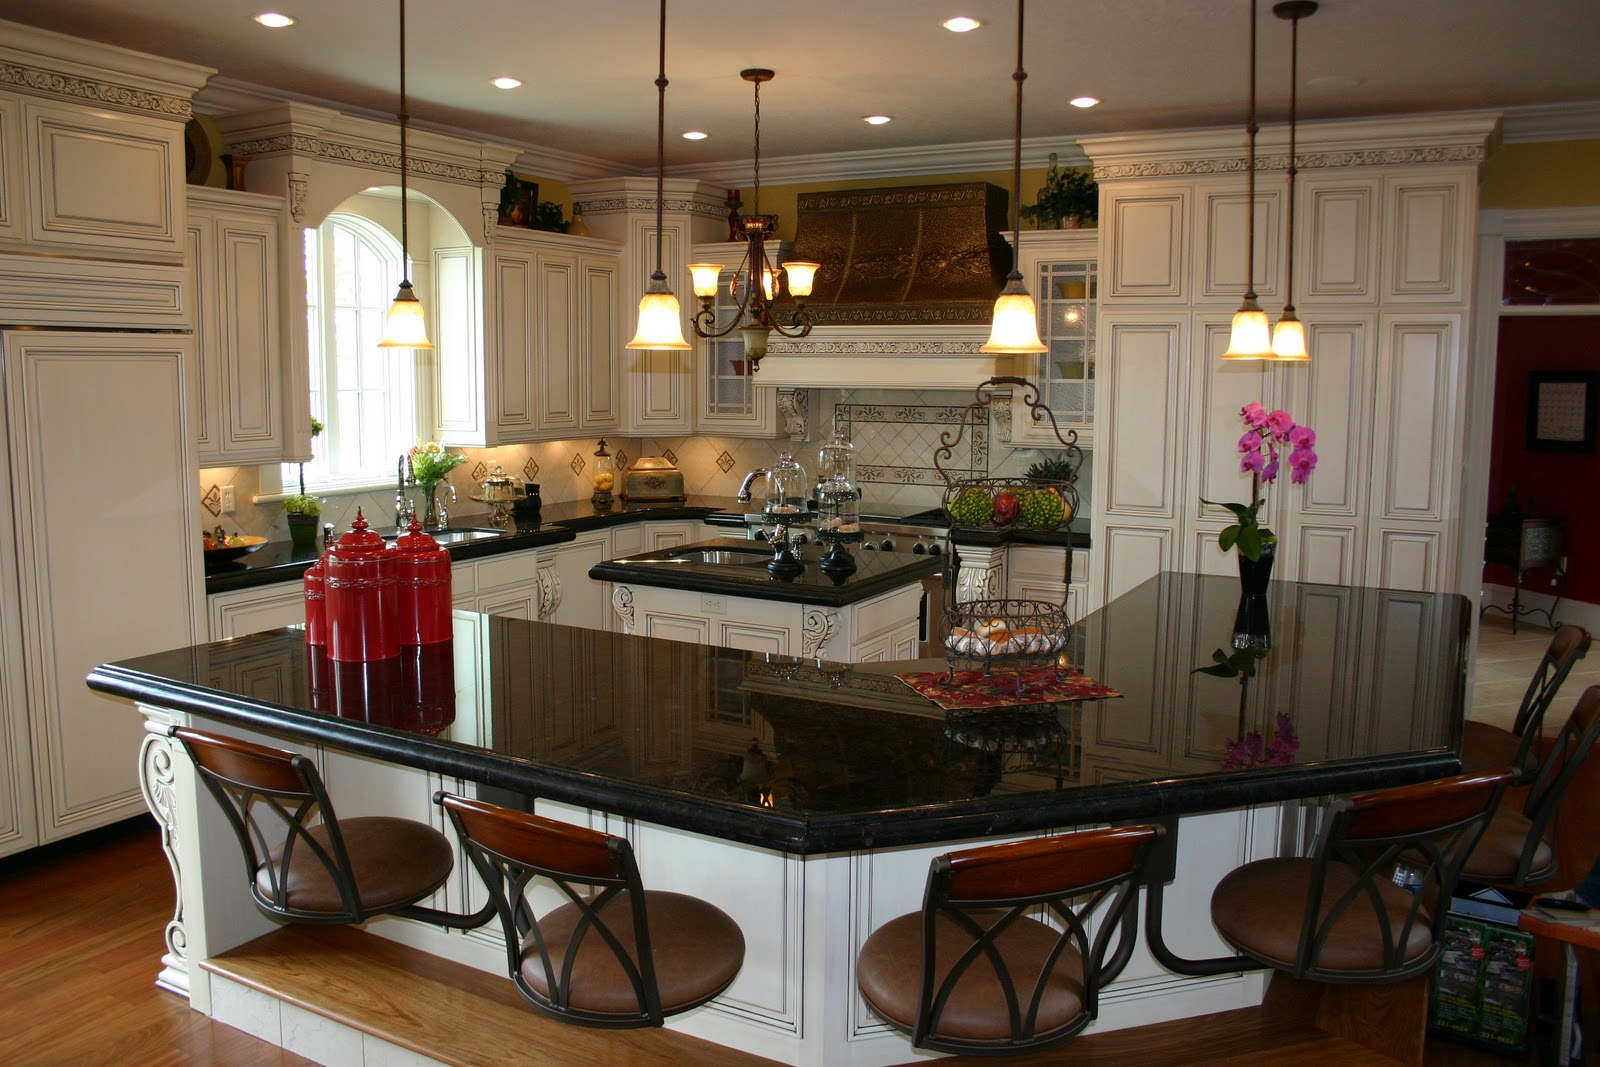 The granite gurus absolute black granite kitchen - Black granite countertops with cream cabinets ...